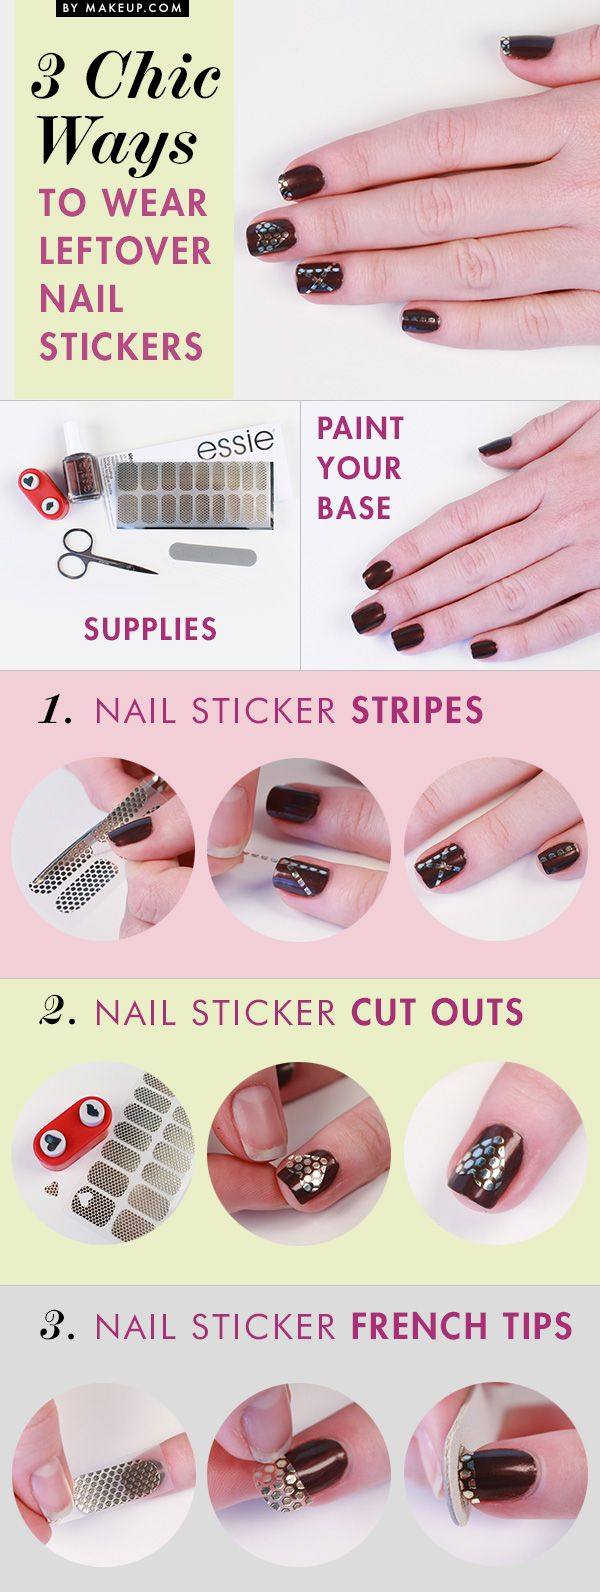 """Nail stickers are the saving grace of shaky handed beauty girls and nail perfectionists everywhere. No bubbles, no chips, <a href=""""http://www.makeup.com/article/minimize-manicure-clean-up/"""">no polish all over the finger tips</a>–but most sticker sets..."""